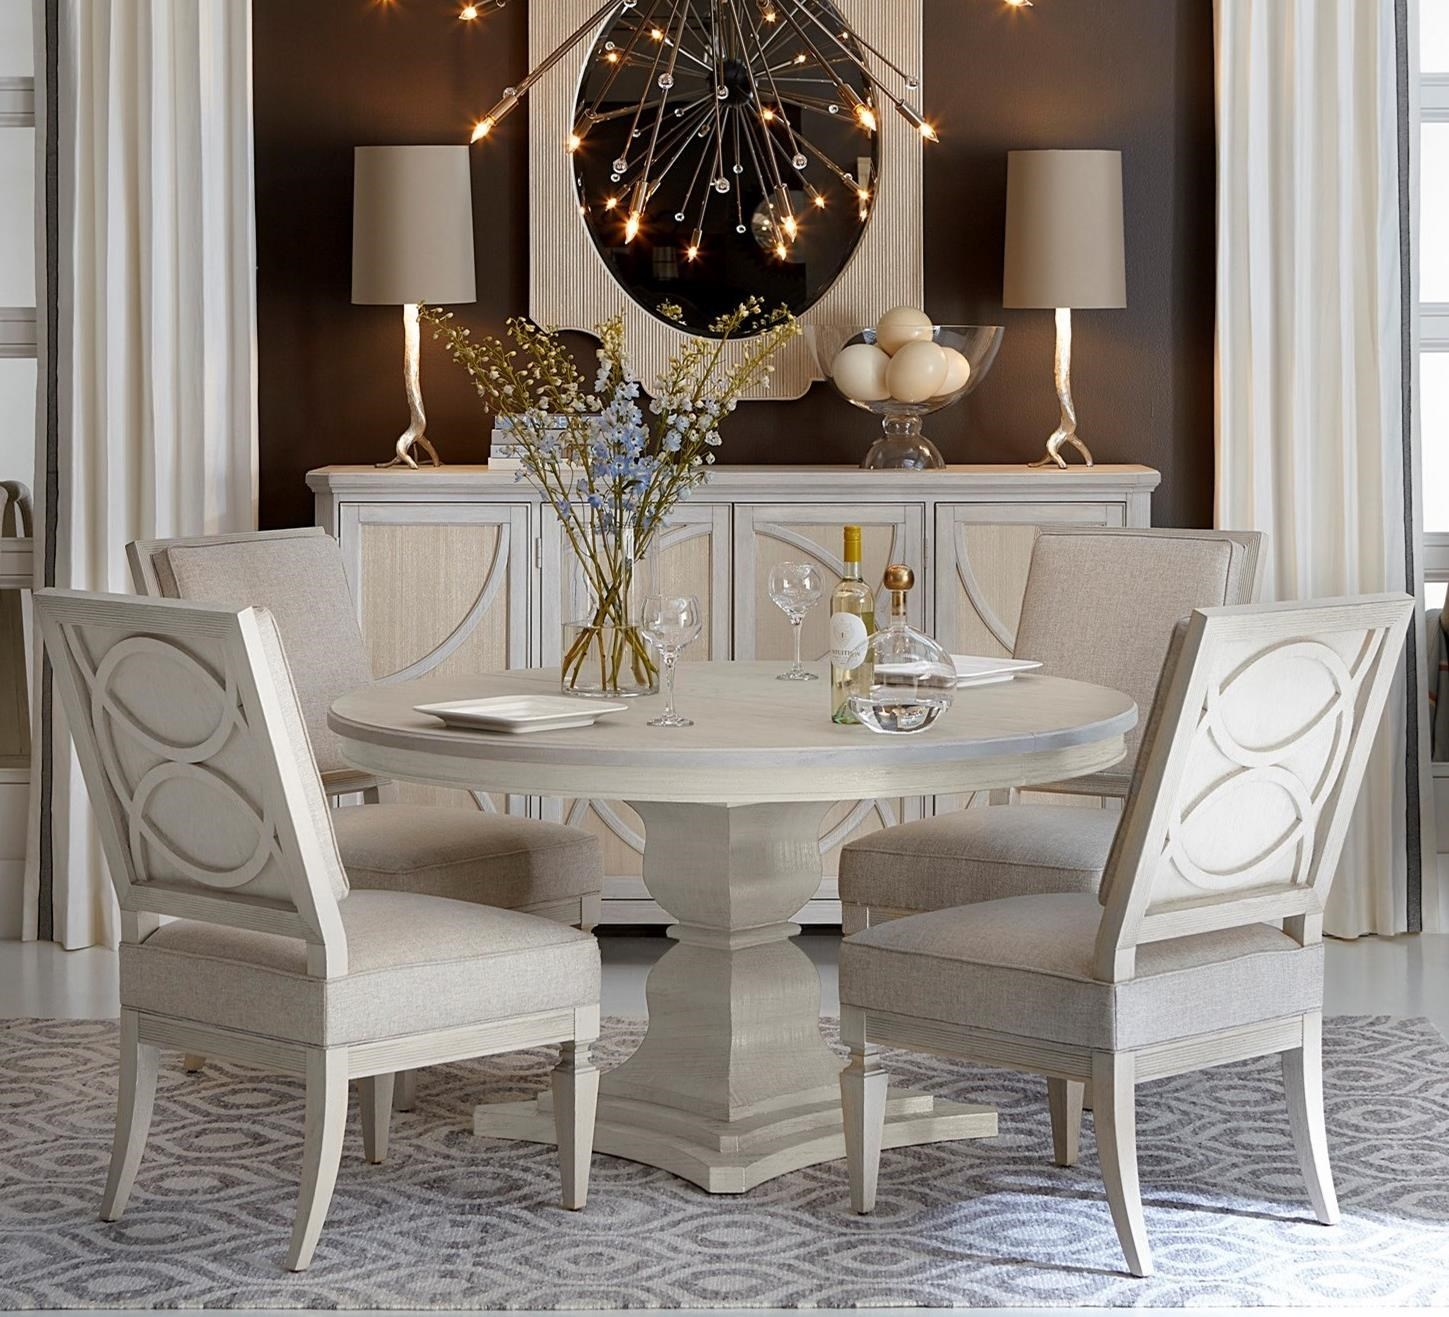 round kitchen table set. A.R.T. Furniture Inc Roseline5-Piece Enzo Round Dining Table Set Kitchen N